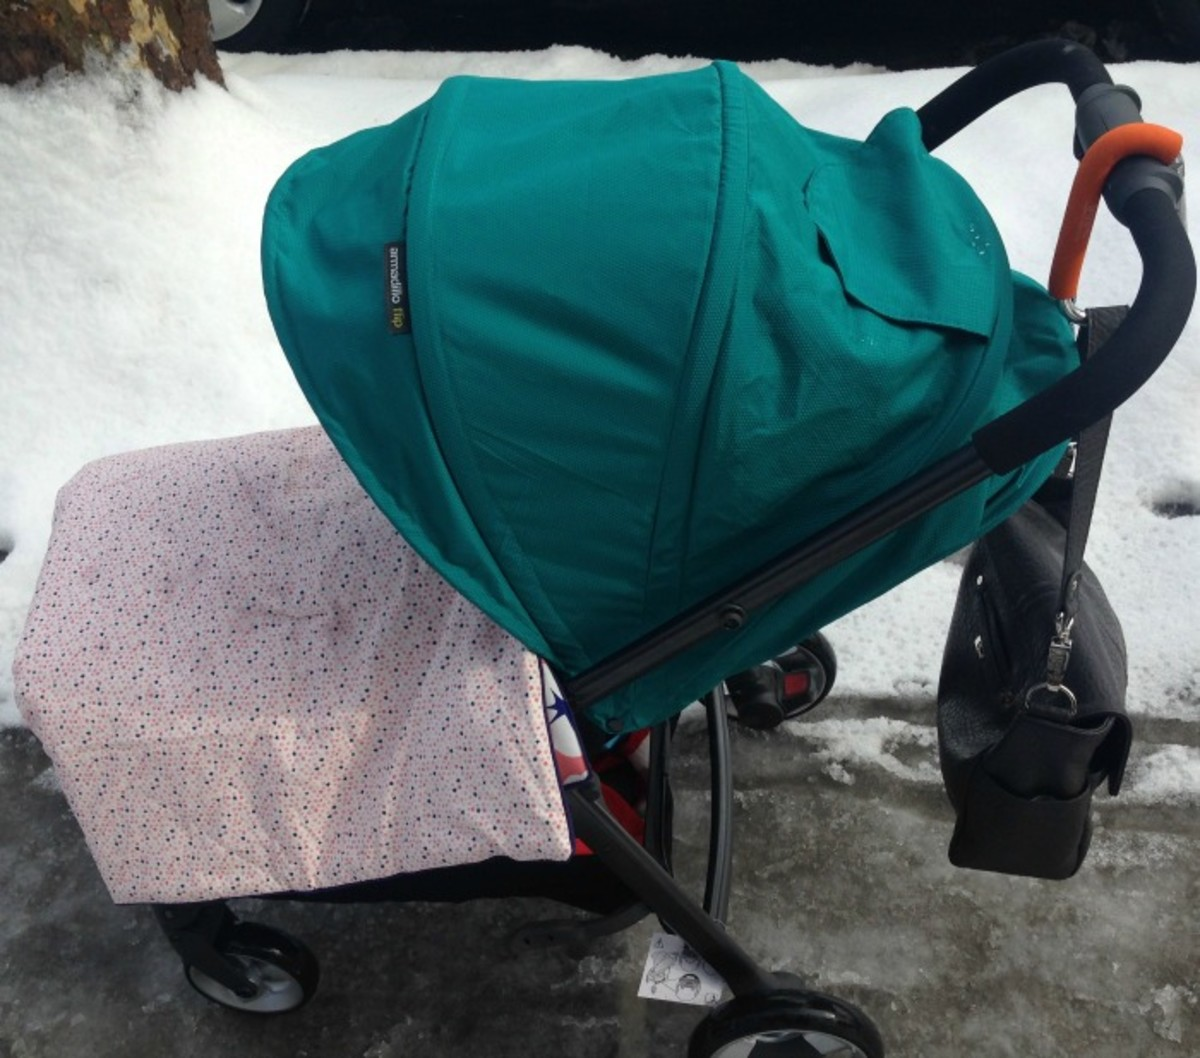 stroller review